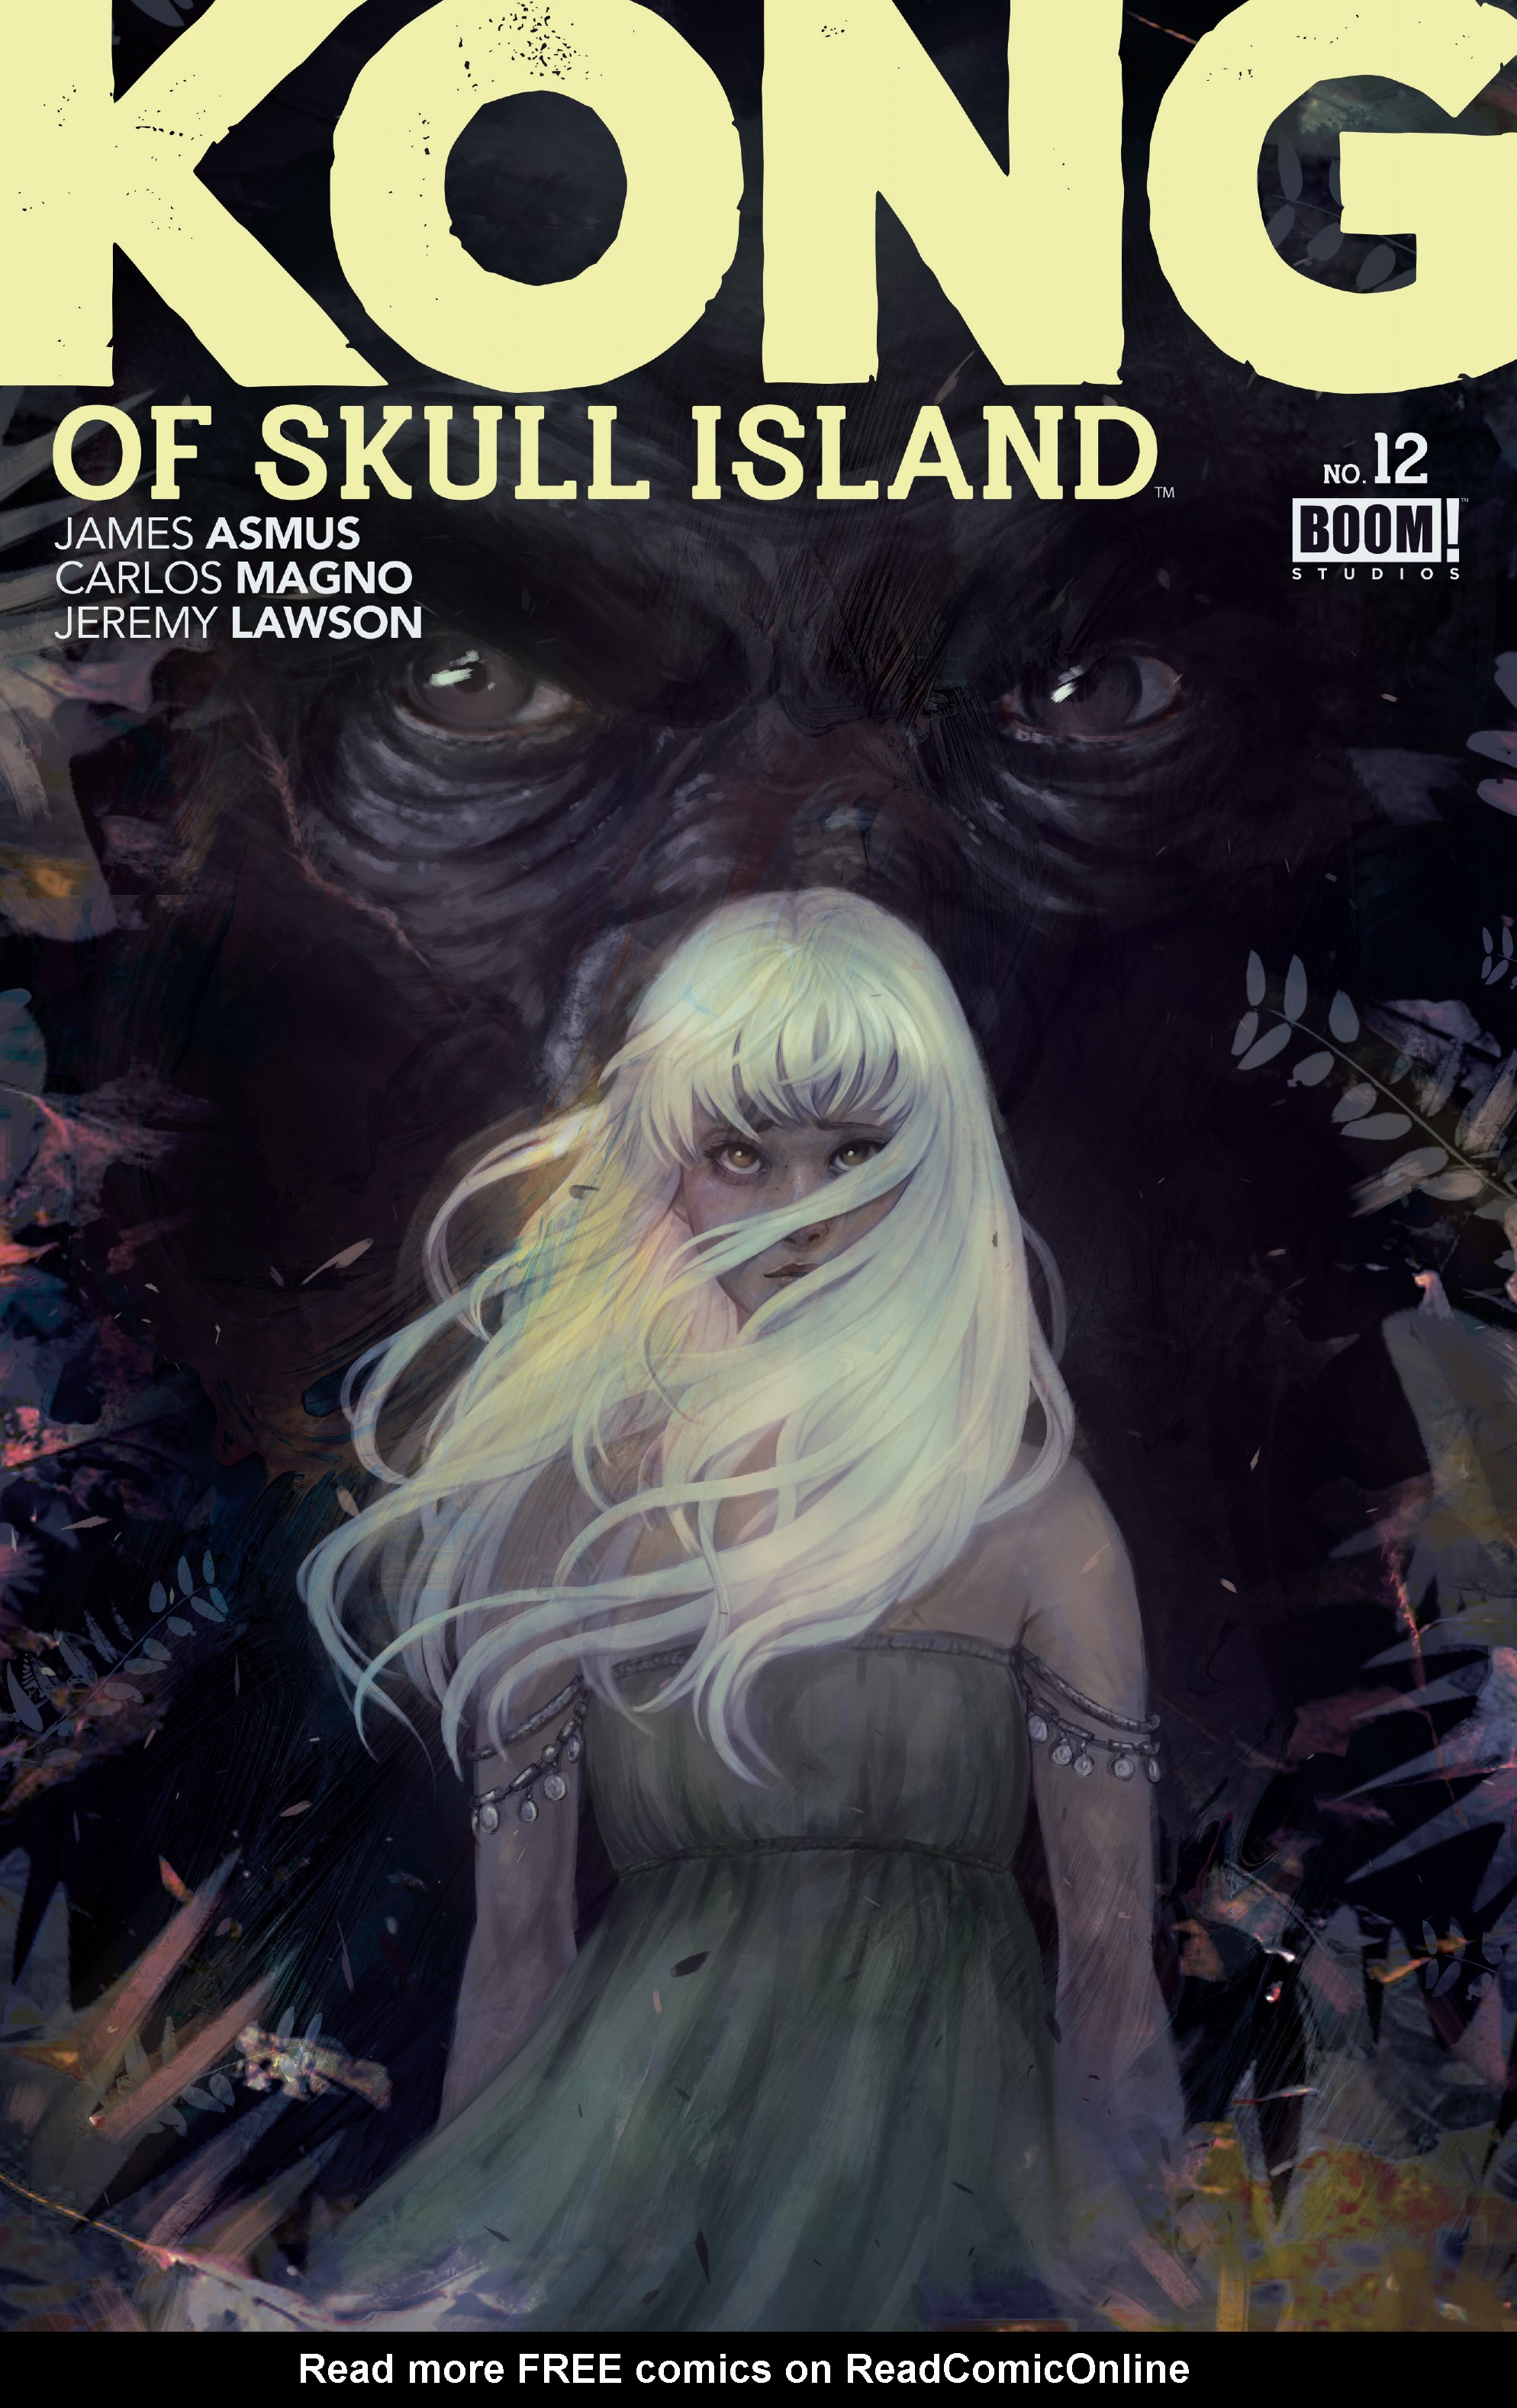 Read online Kong Of Skull Island comic -  Issue #12 - 1